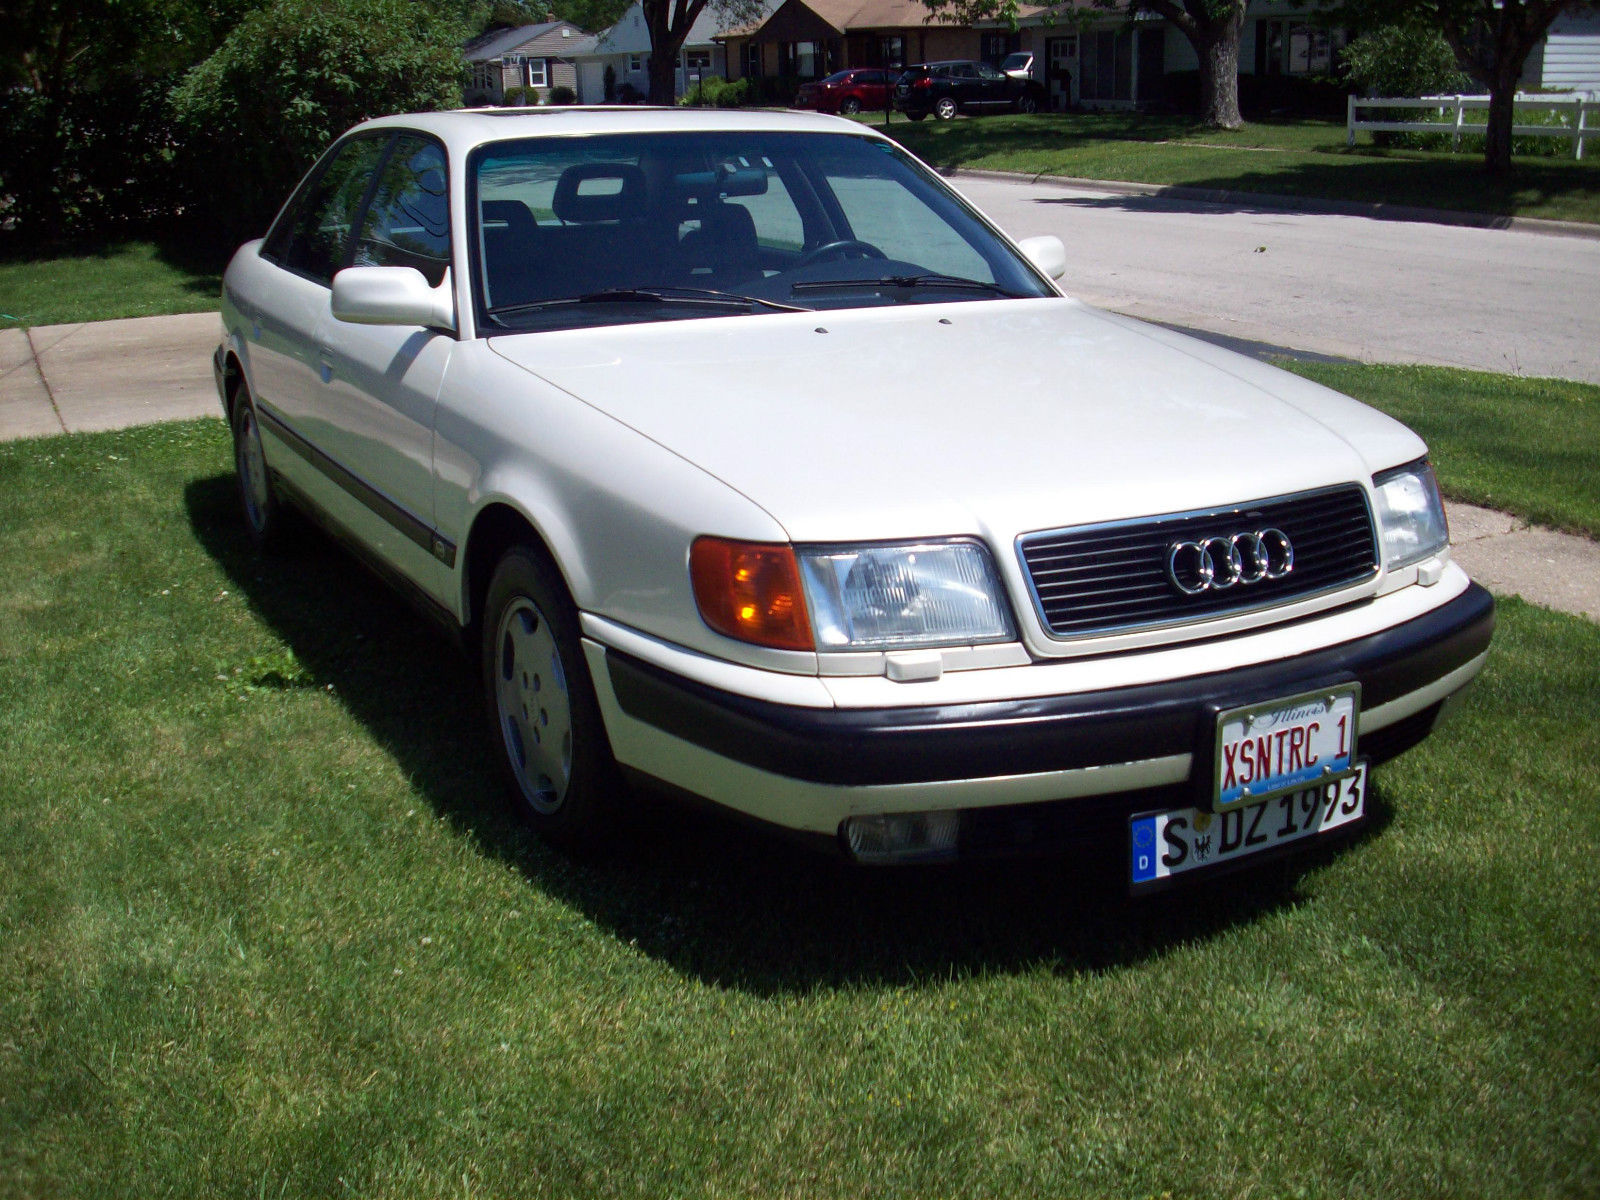 Vintage, 1993 Audi 100 CS, Pearl White, Euro Plate, 5 speed, Reserve  Lowered.